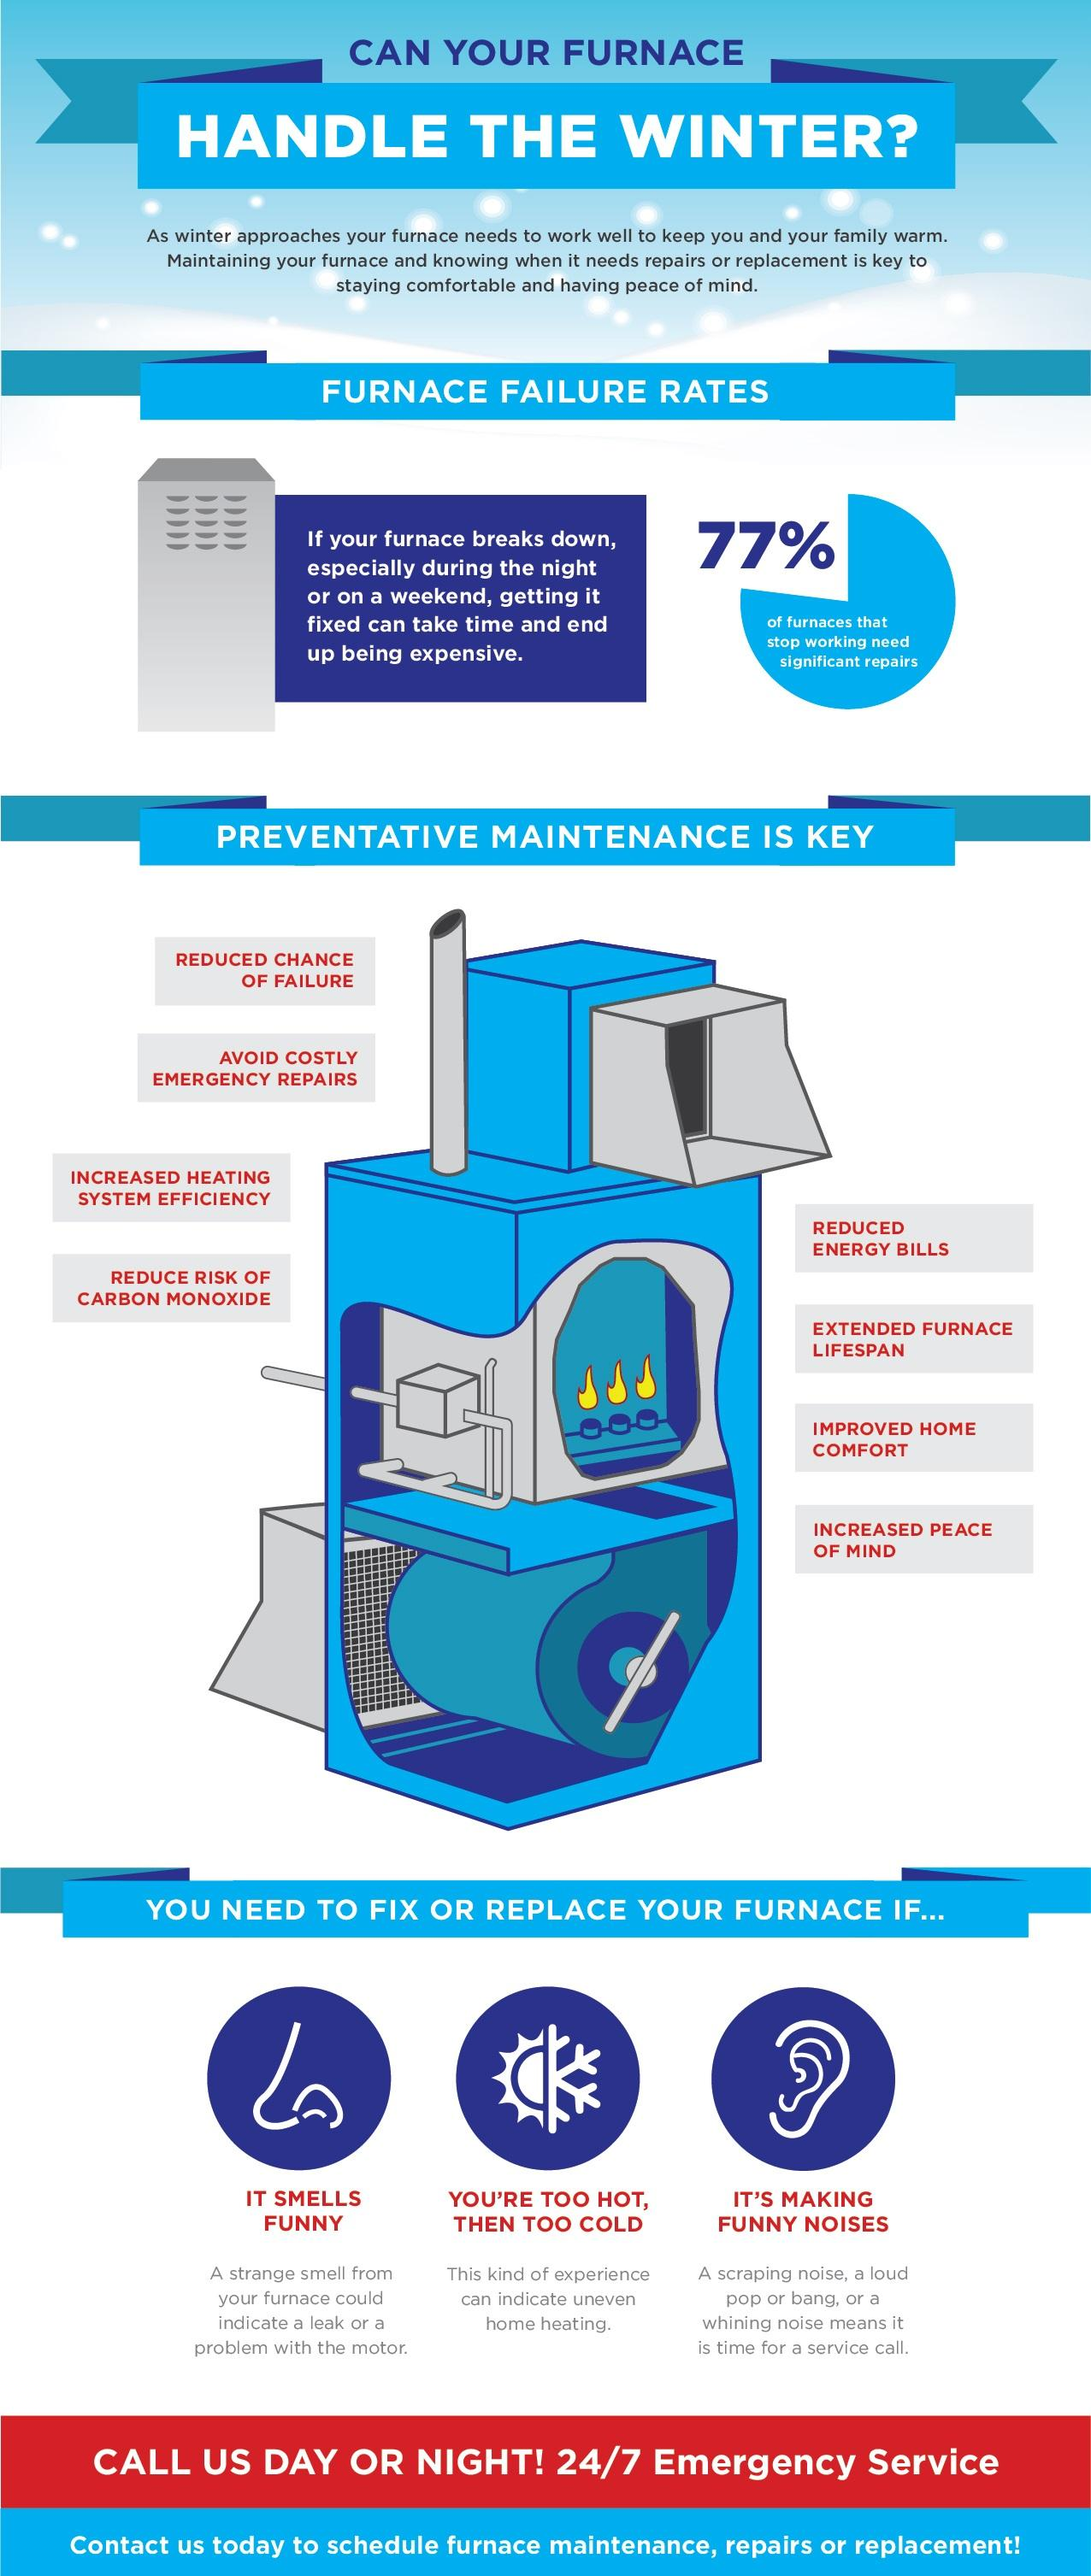 Is your furnace ready for winter? Infographic from Tom Rostron Co., Inc. in Wall Township NJ.